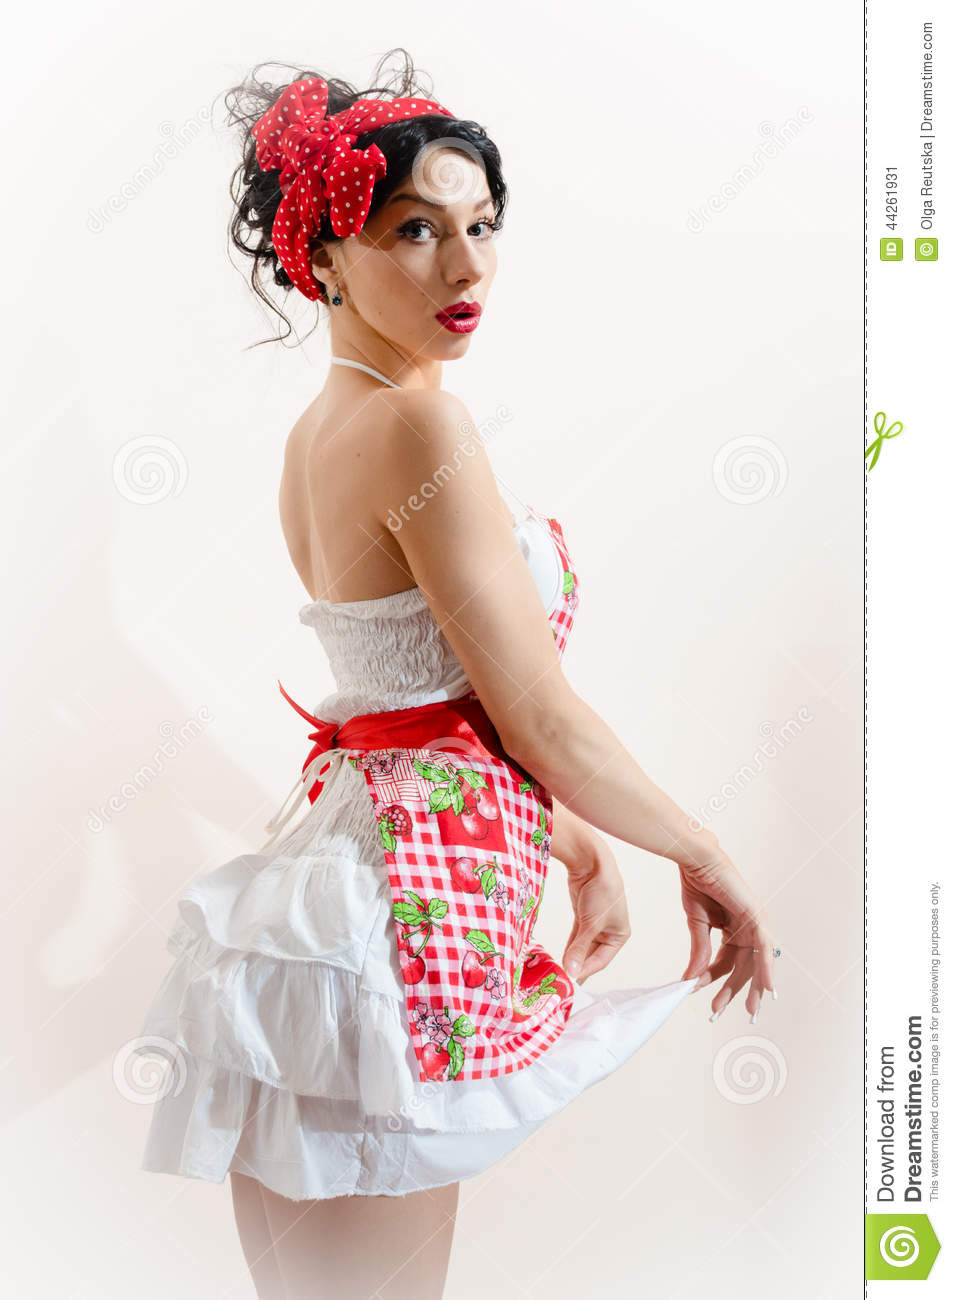 Funny young brunette pinup pretty lady with blue eyes having fun posing & looking at camera over naked shoulder